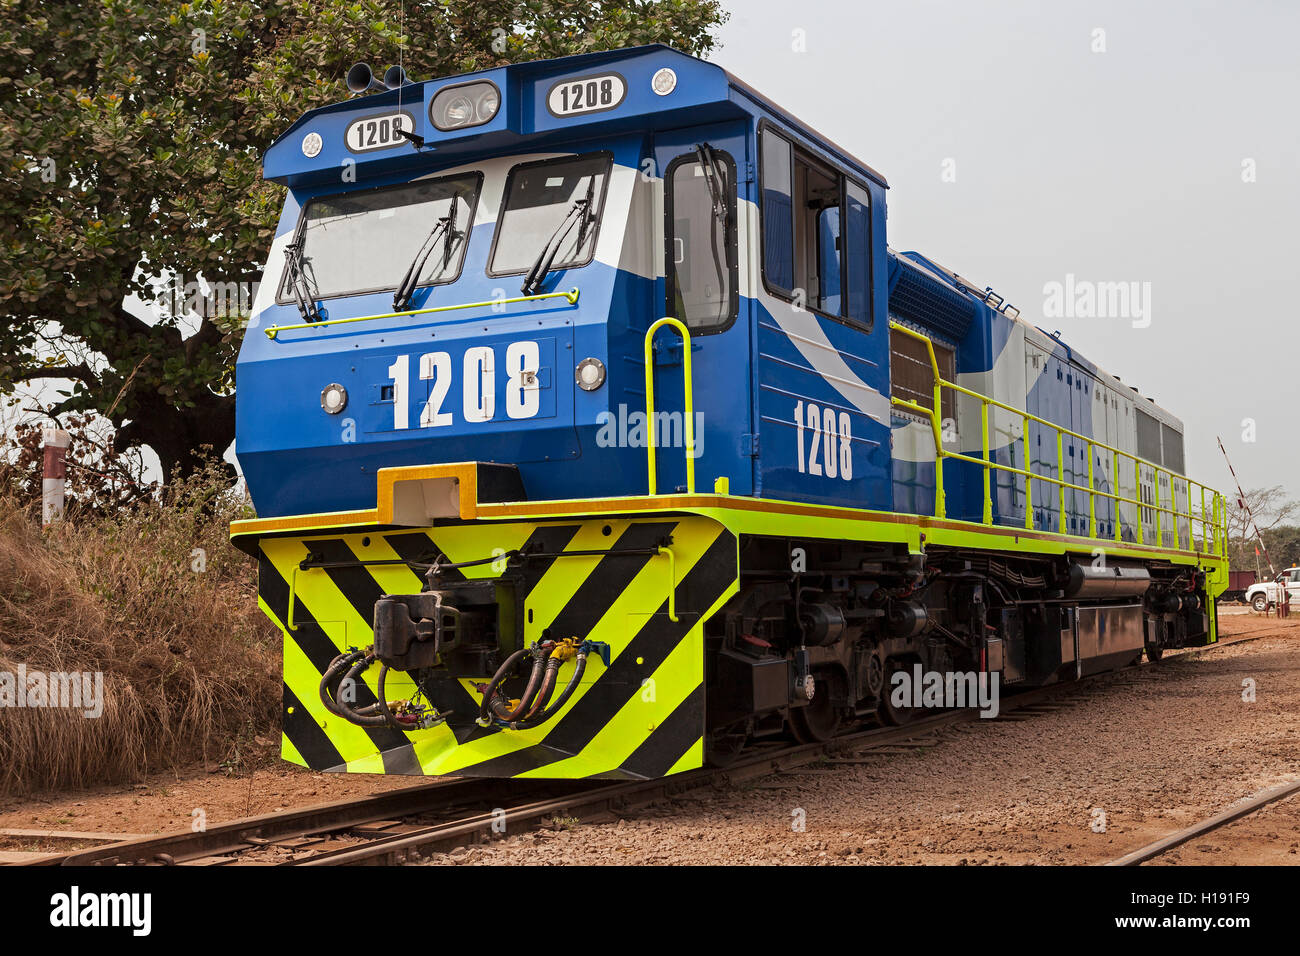 Operations for transporting and managing iron ore. New locomotive added to the fleet used to pull full iron ore - Stock Image